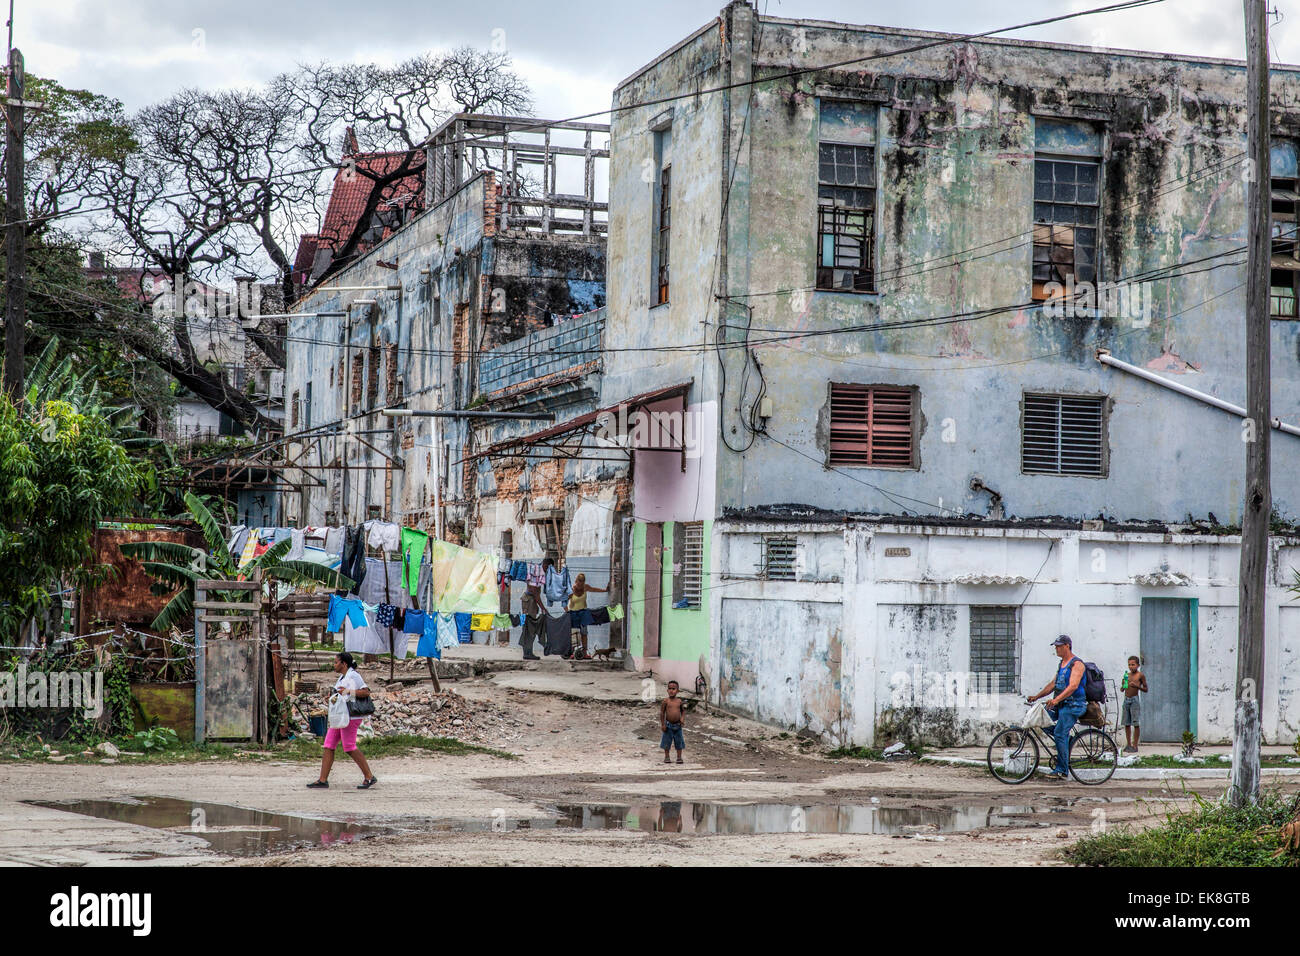 Shanty town with derelict buildings in a suburb of Havana in Cuba Stock Photo